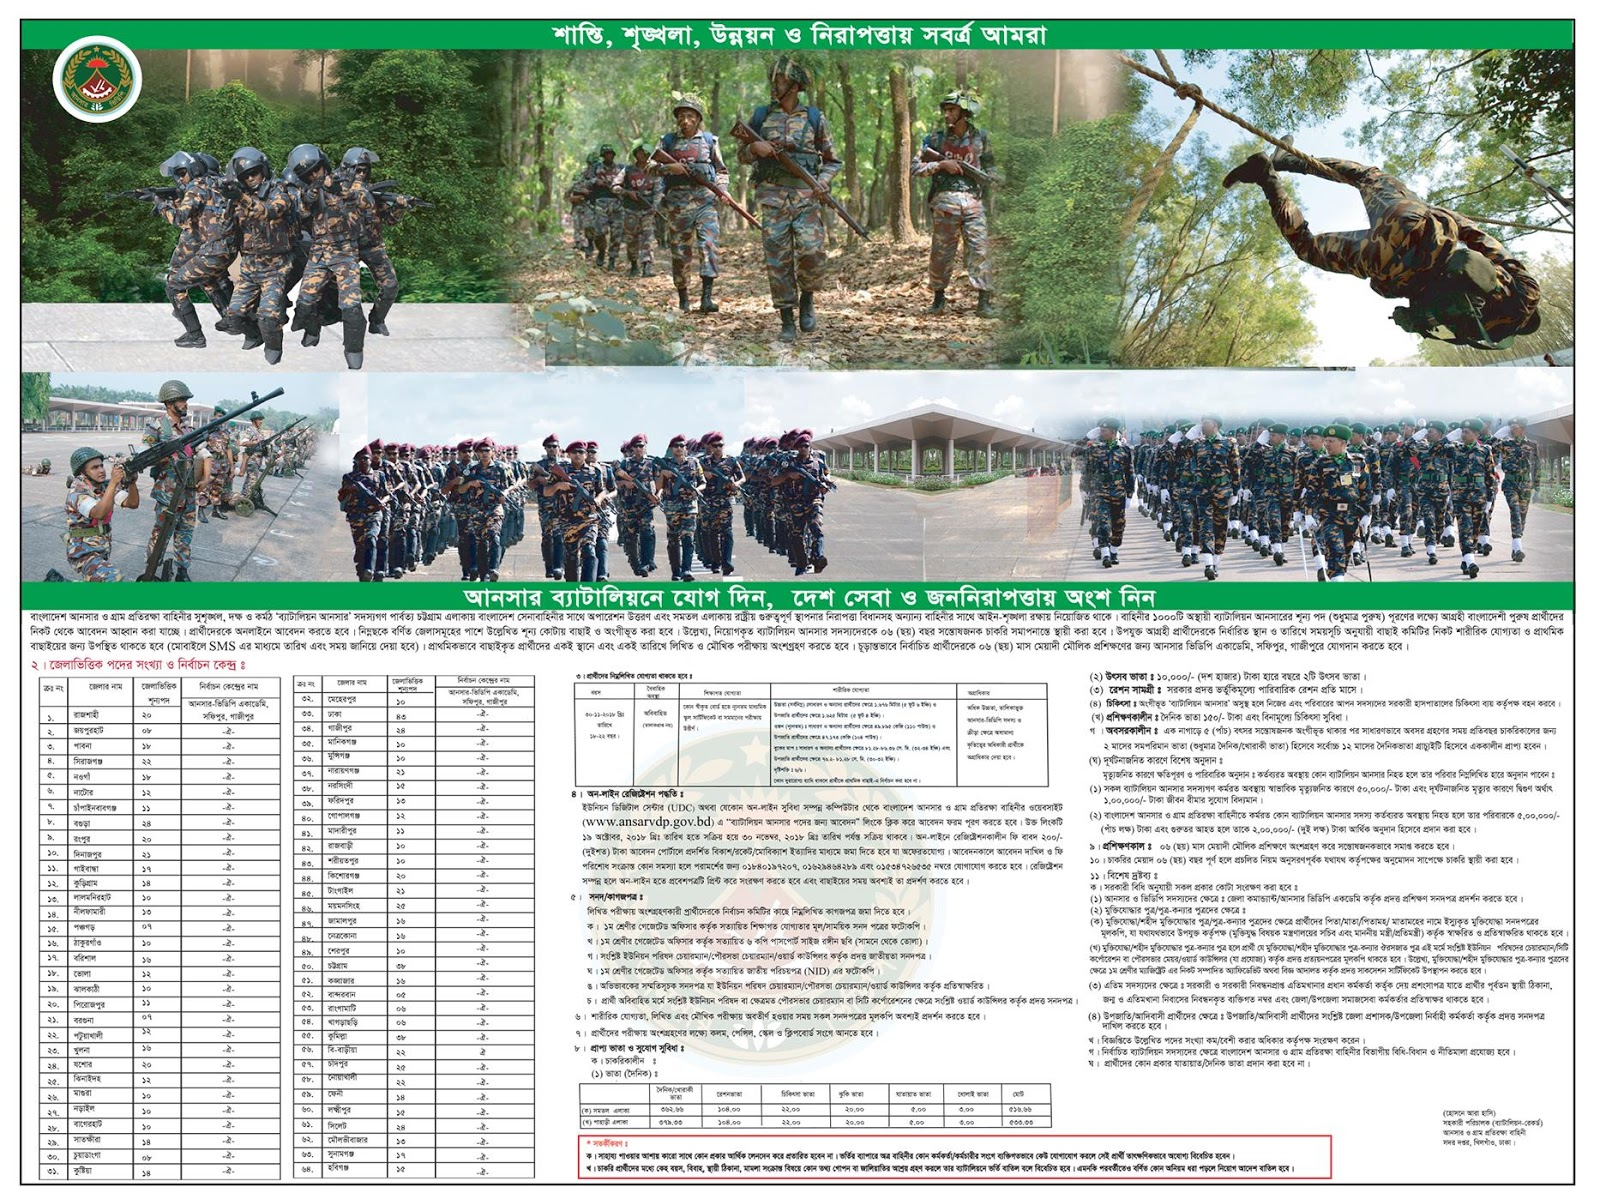 Bangladesh Ansar VDP Recruitment General Ansar Basic Training Circular 2018-2019